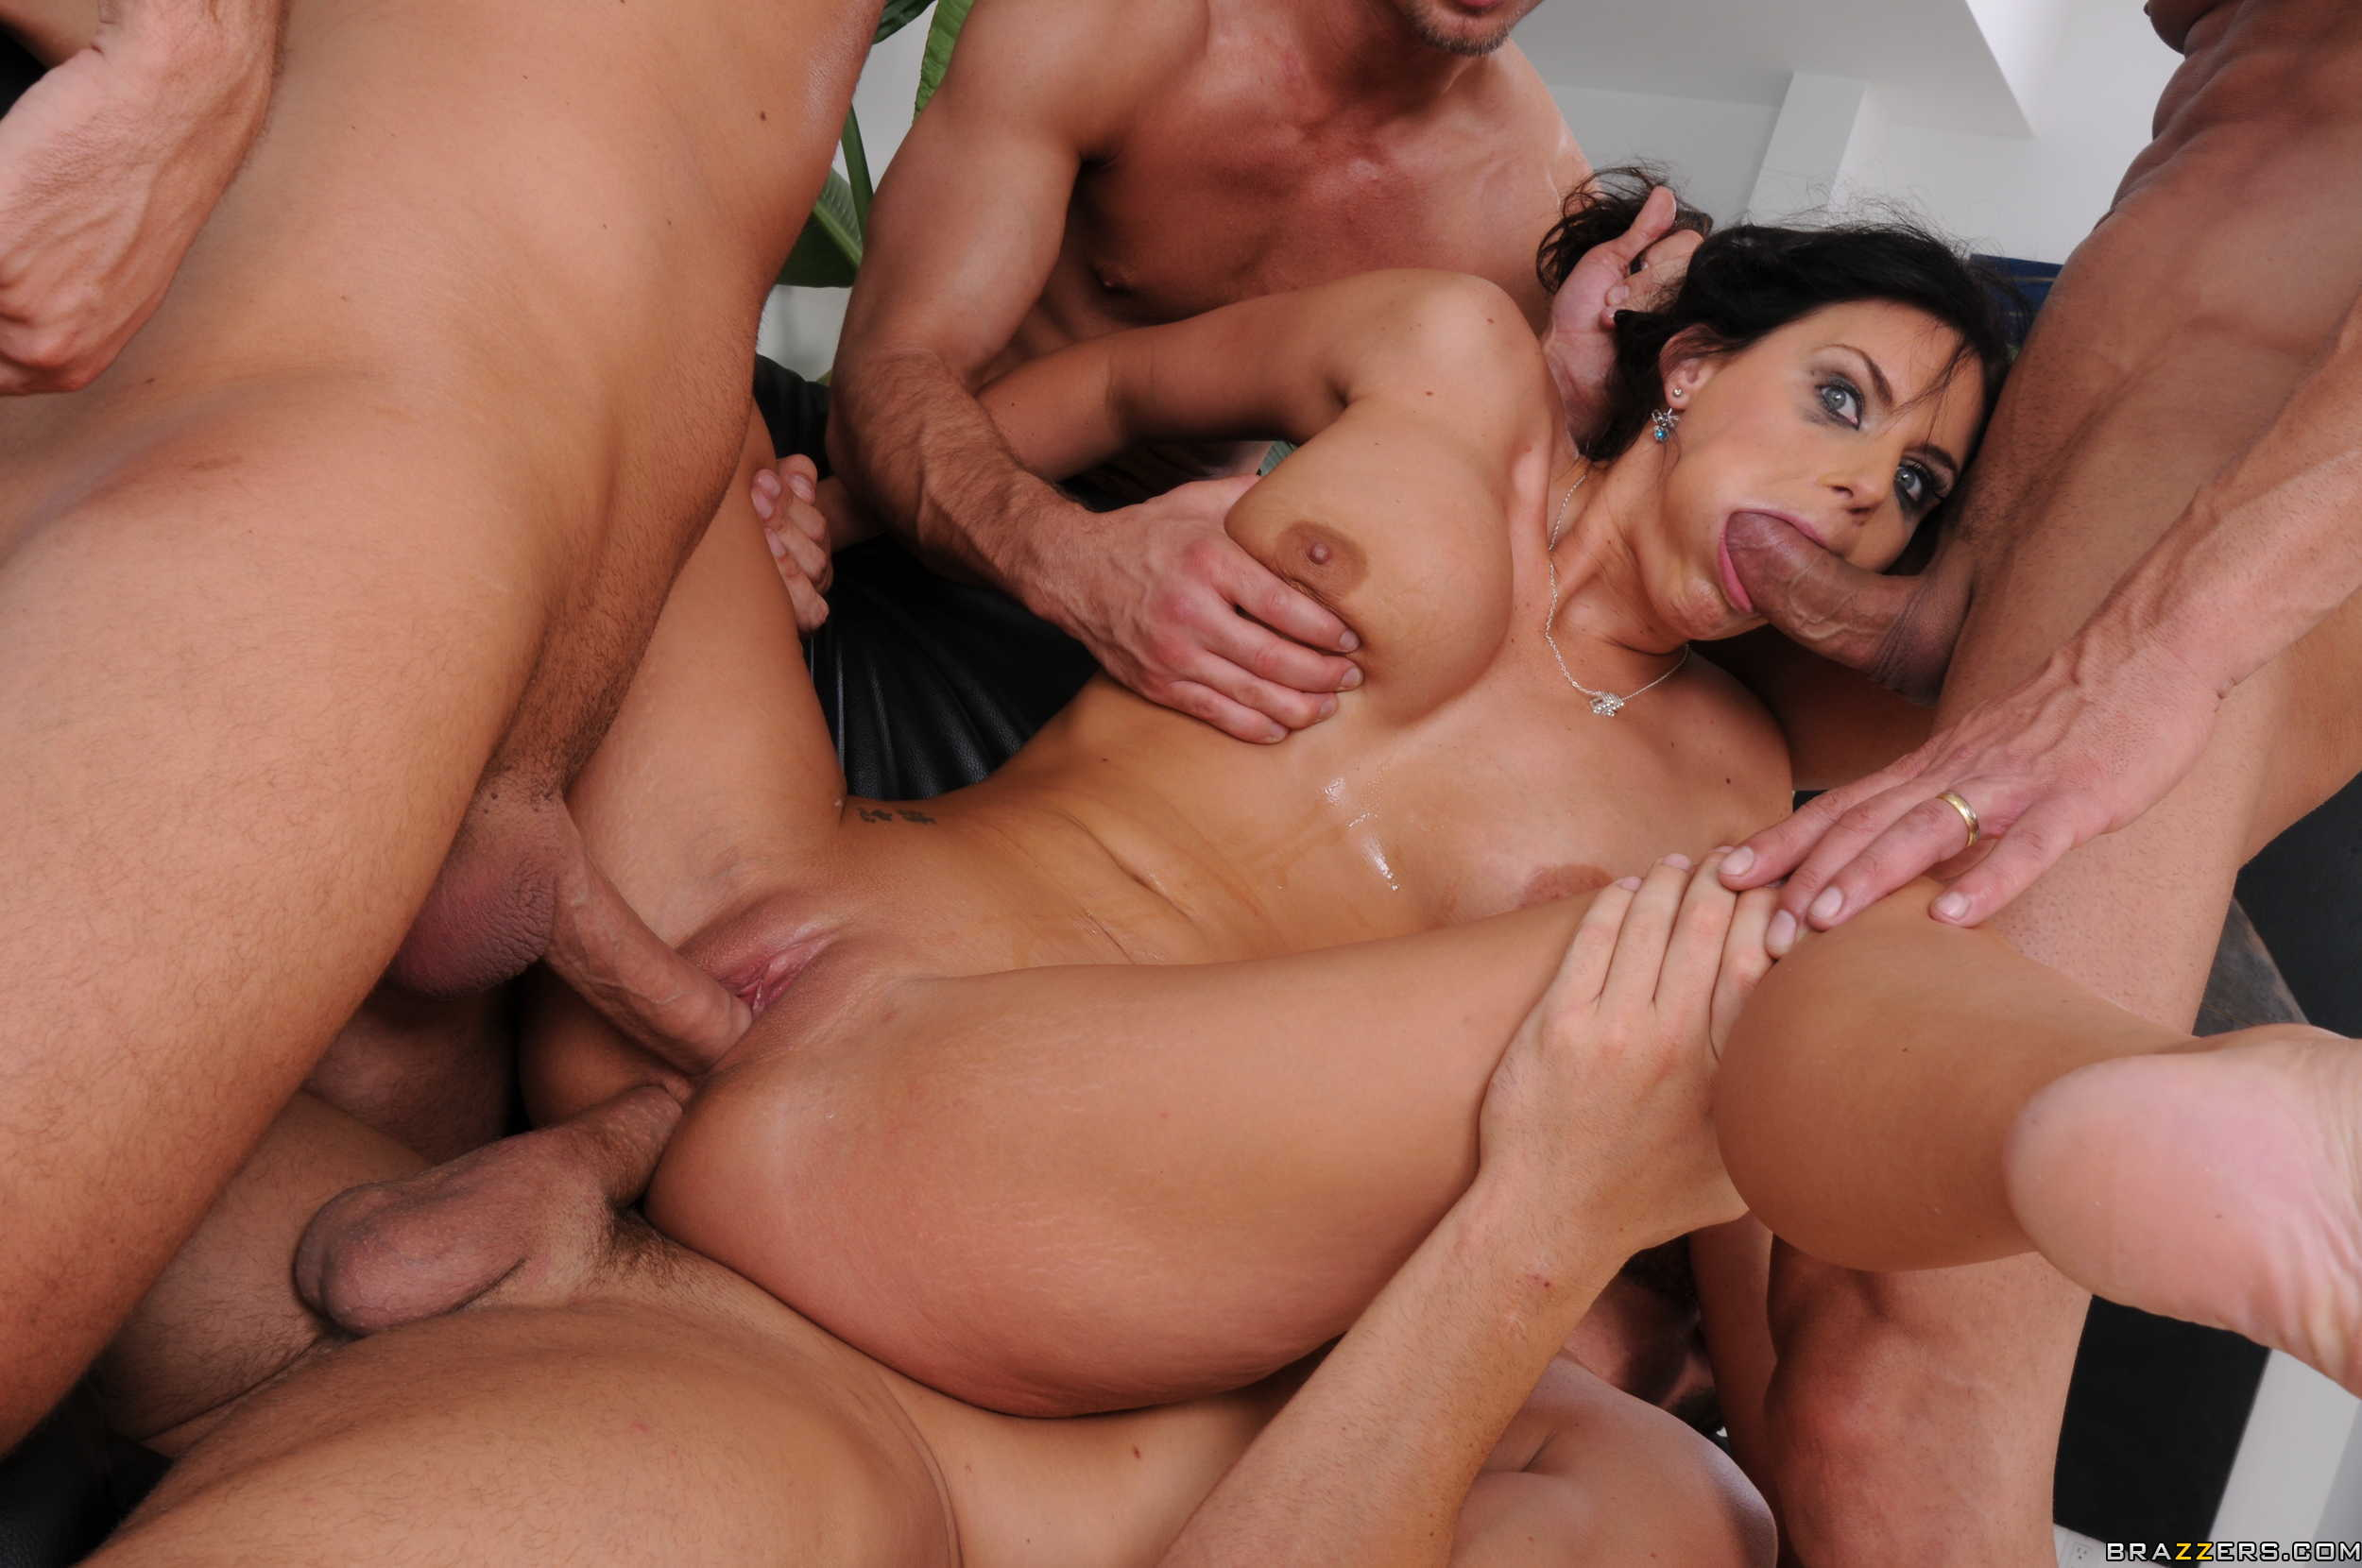 3 internet strangers come over to gangbang wife - 3 part 10